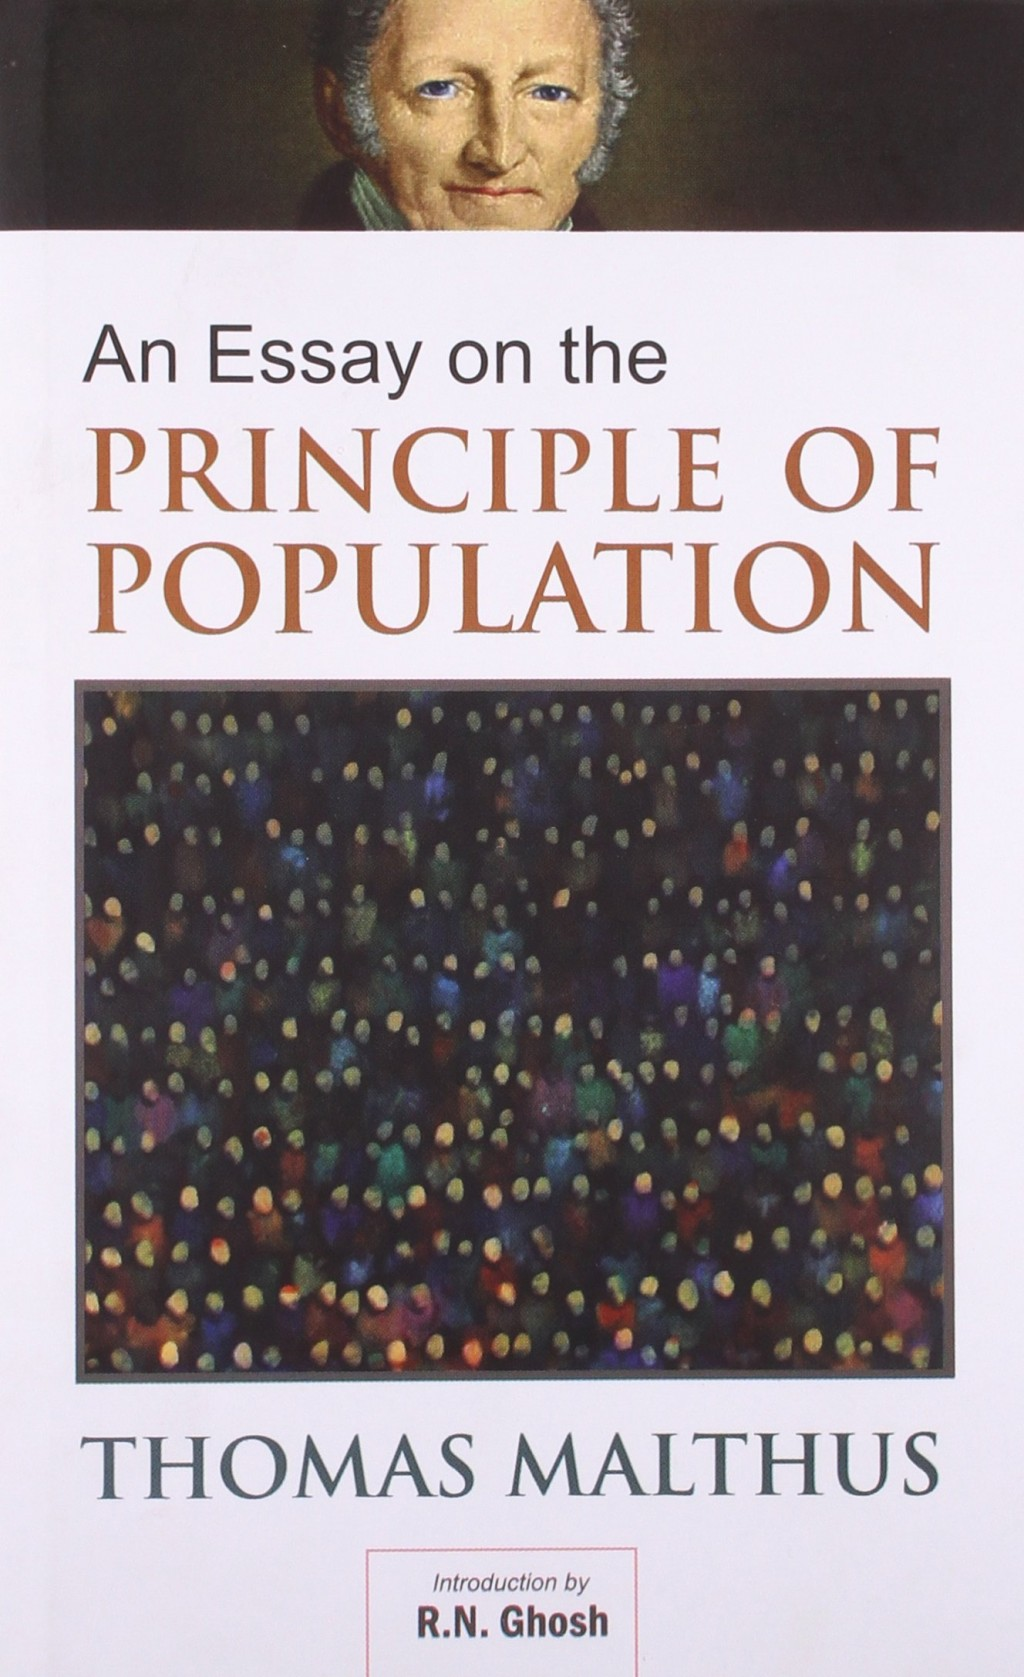 006 Essay On The Principle Of Population 8162bfm1ycfl Singular Thomas Malthus Sparknotes Advocated Ap Euro Large